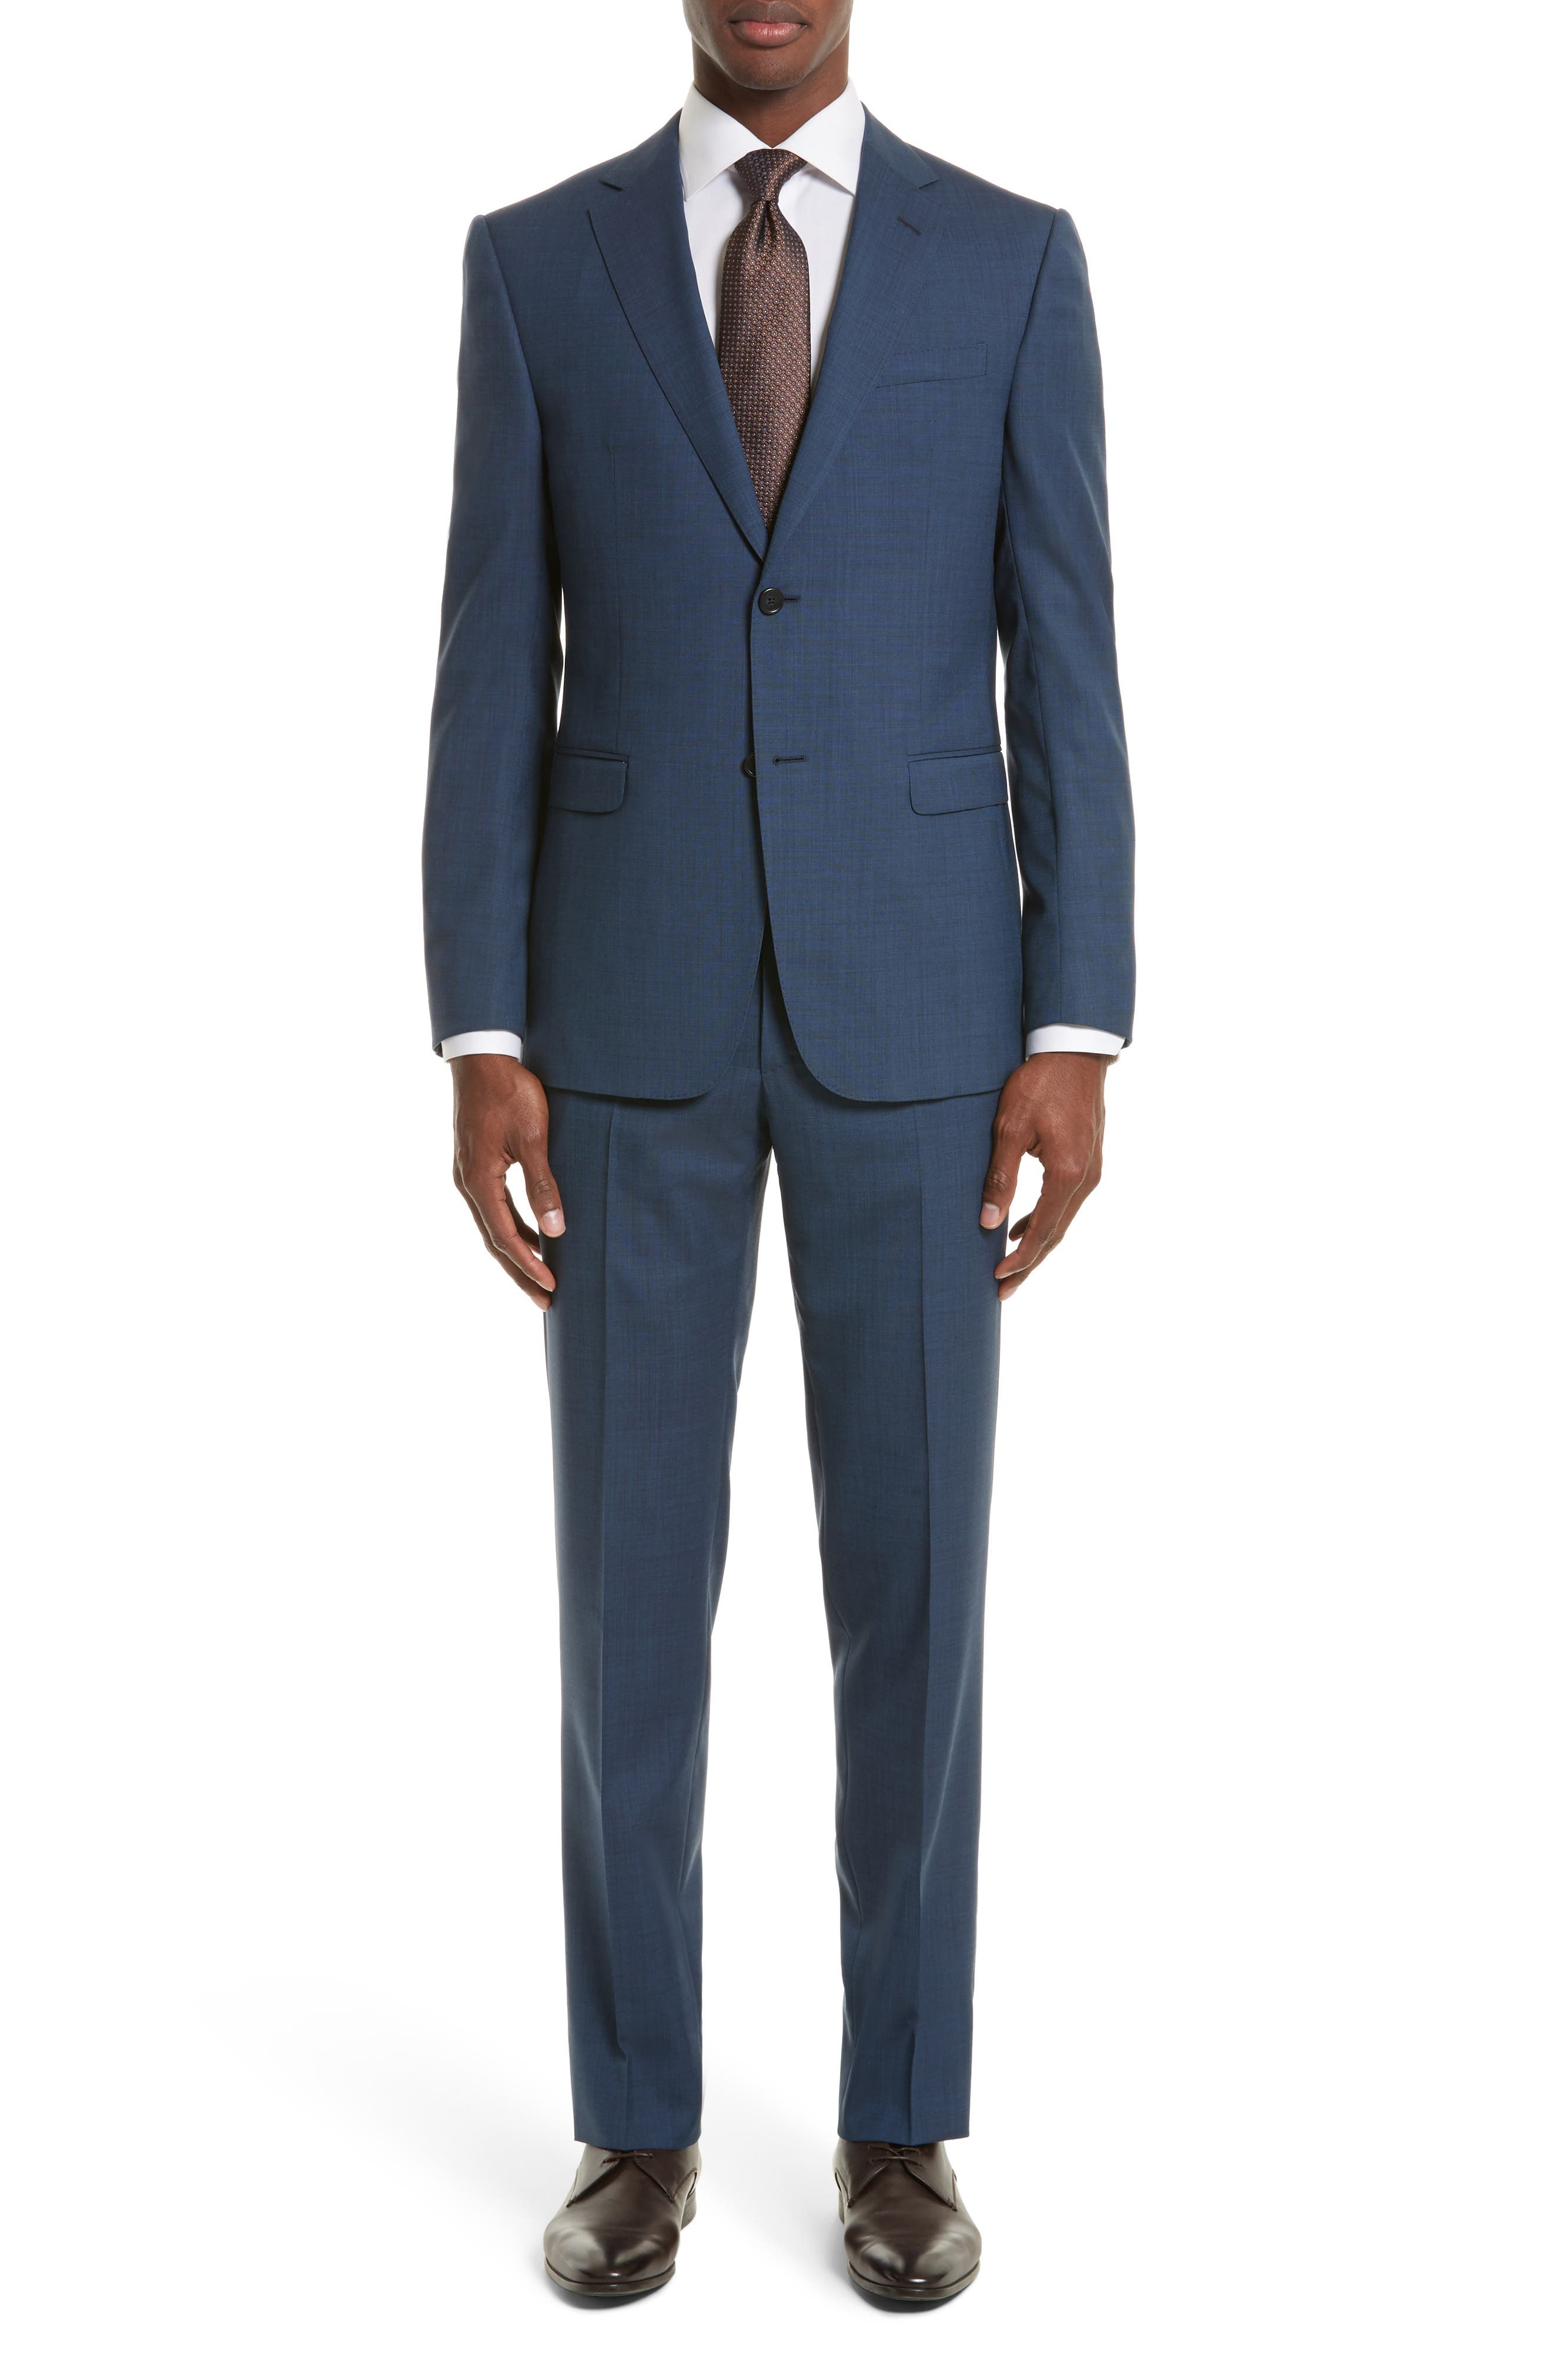 Alternate Image 1 Selected - Z Zegna Drop 7 Trim Fit Solid Wool & Silk Suit